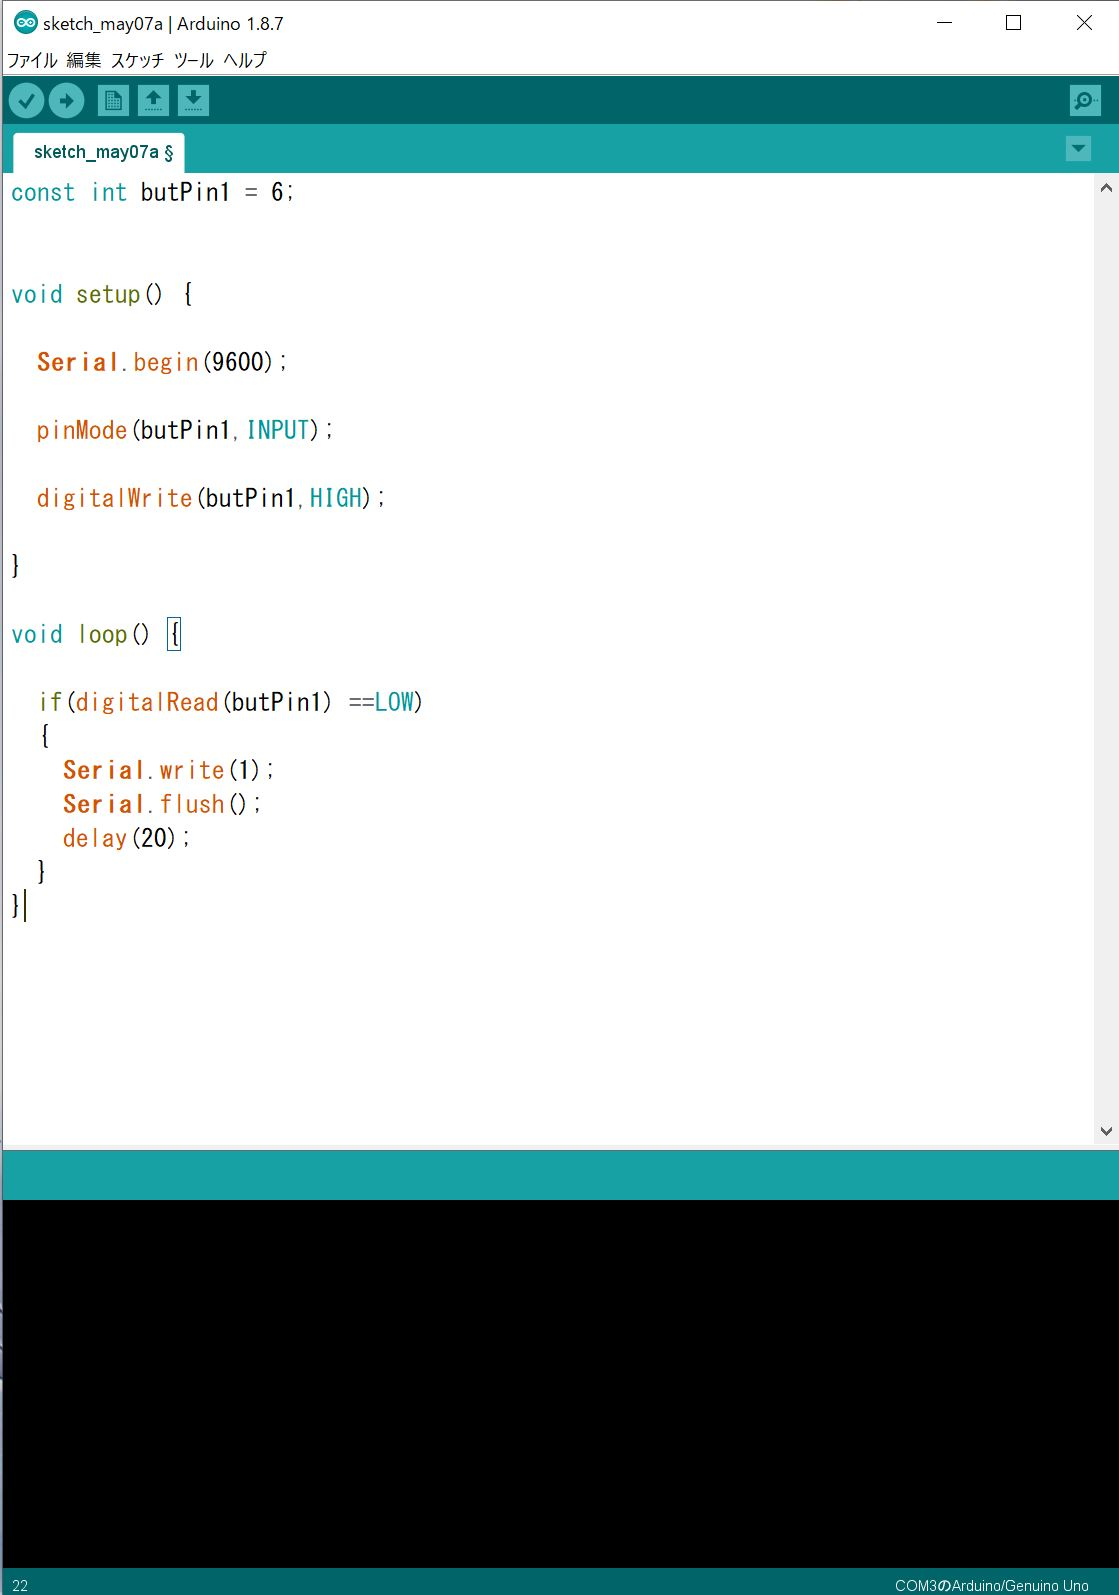 Please help me with using Arduino to control GUI in the screen